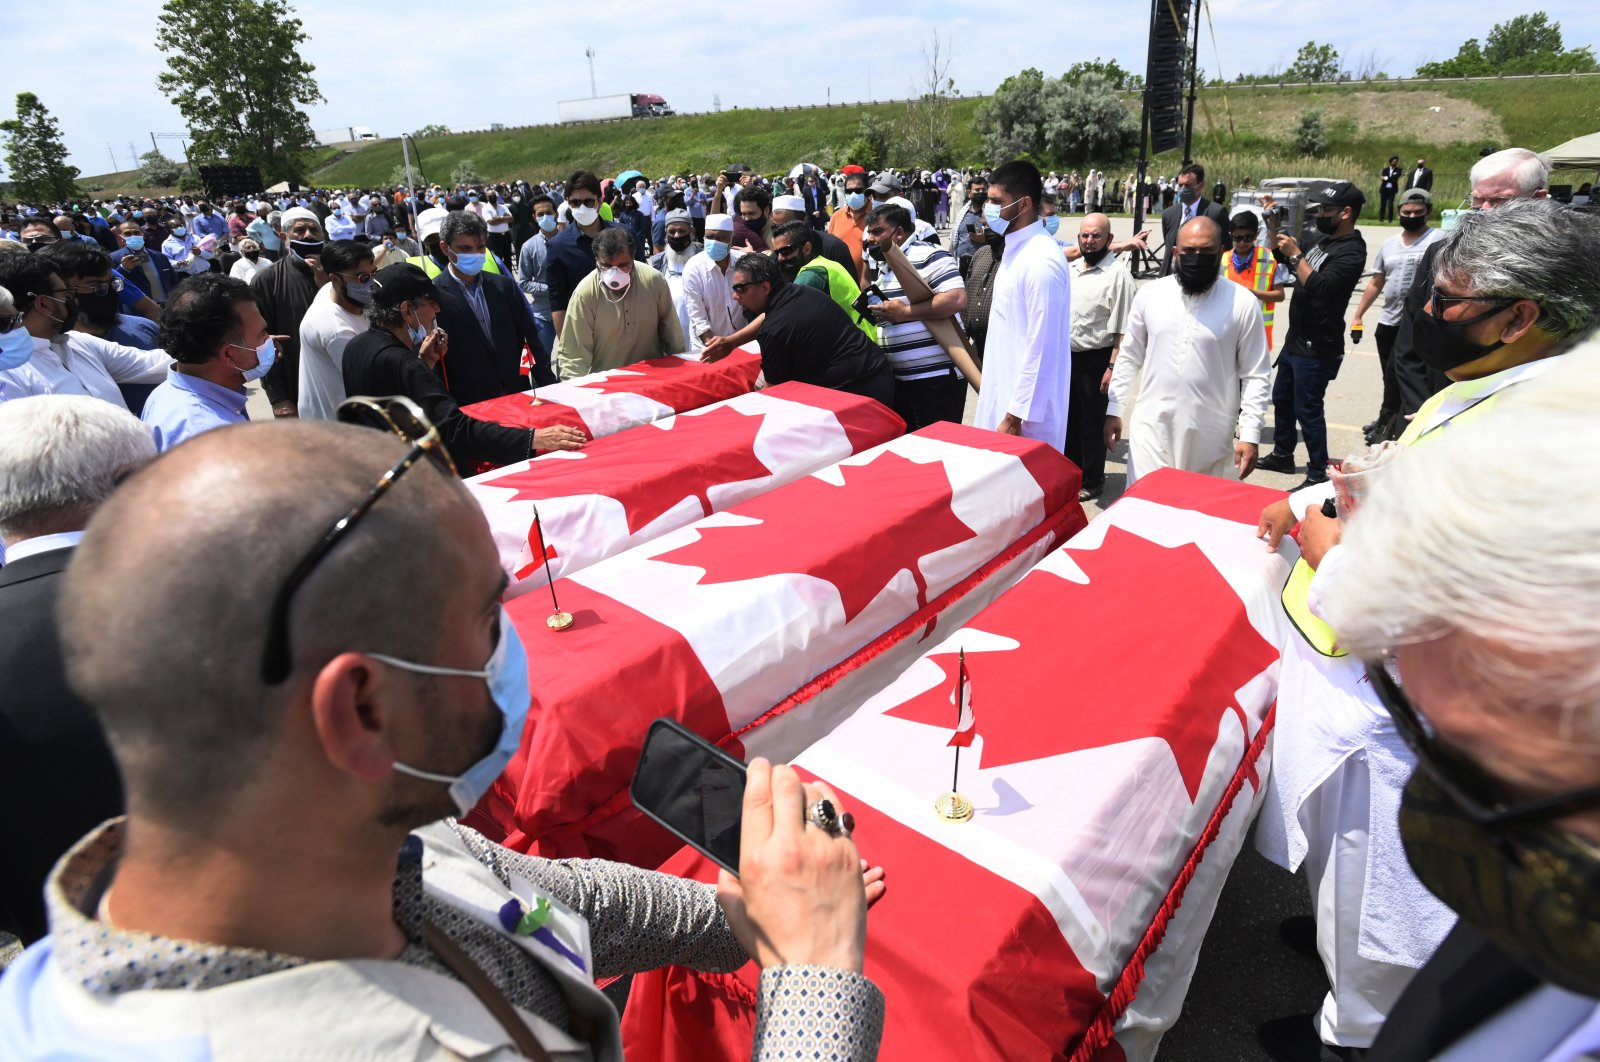 Caskets draped in Canadian flags arrive at a funeral for the four Muslim family members killed in a deadly vehicle attack, at the Islamic Centre of Southwest Ontario in London, Ont., on Saturday, June 12, 2021. (AP File Photo)